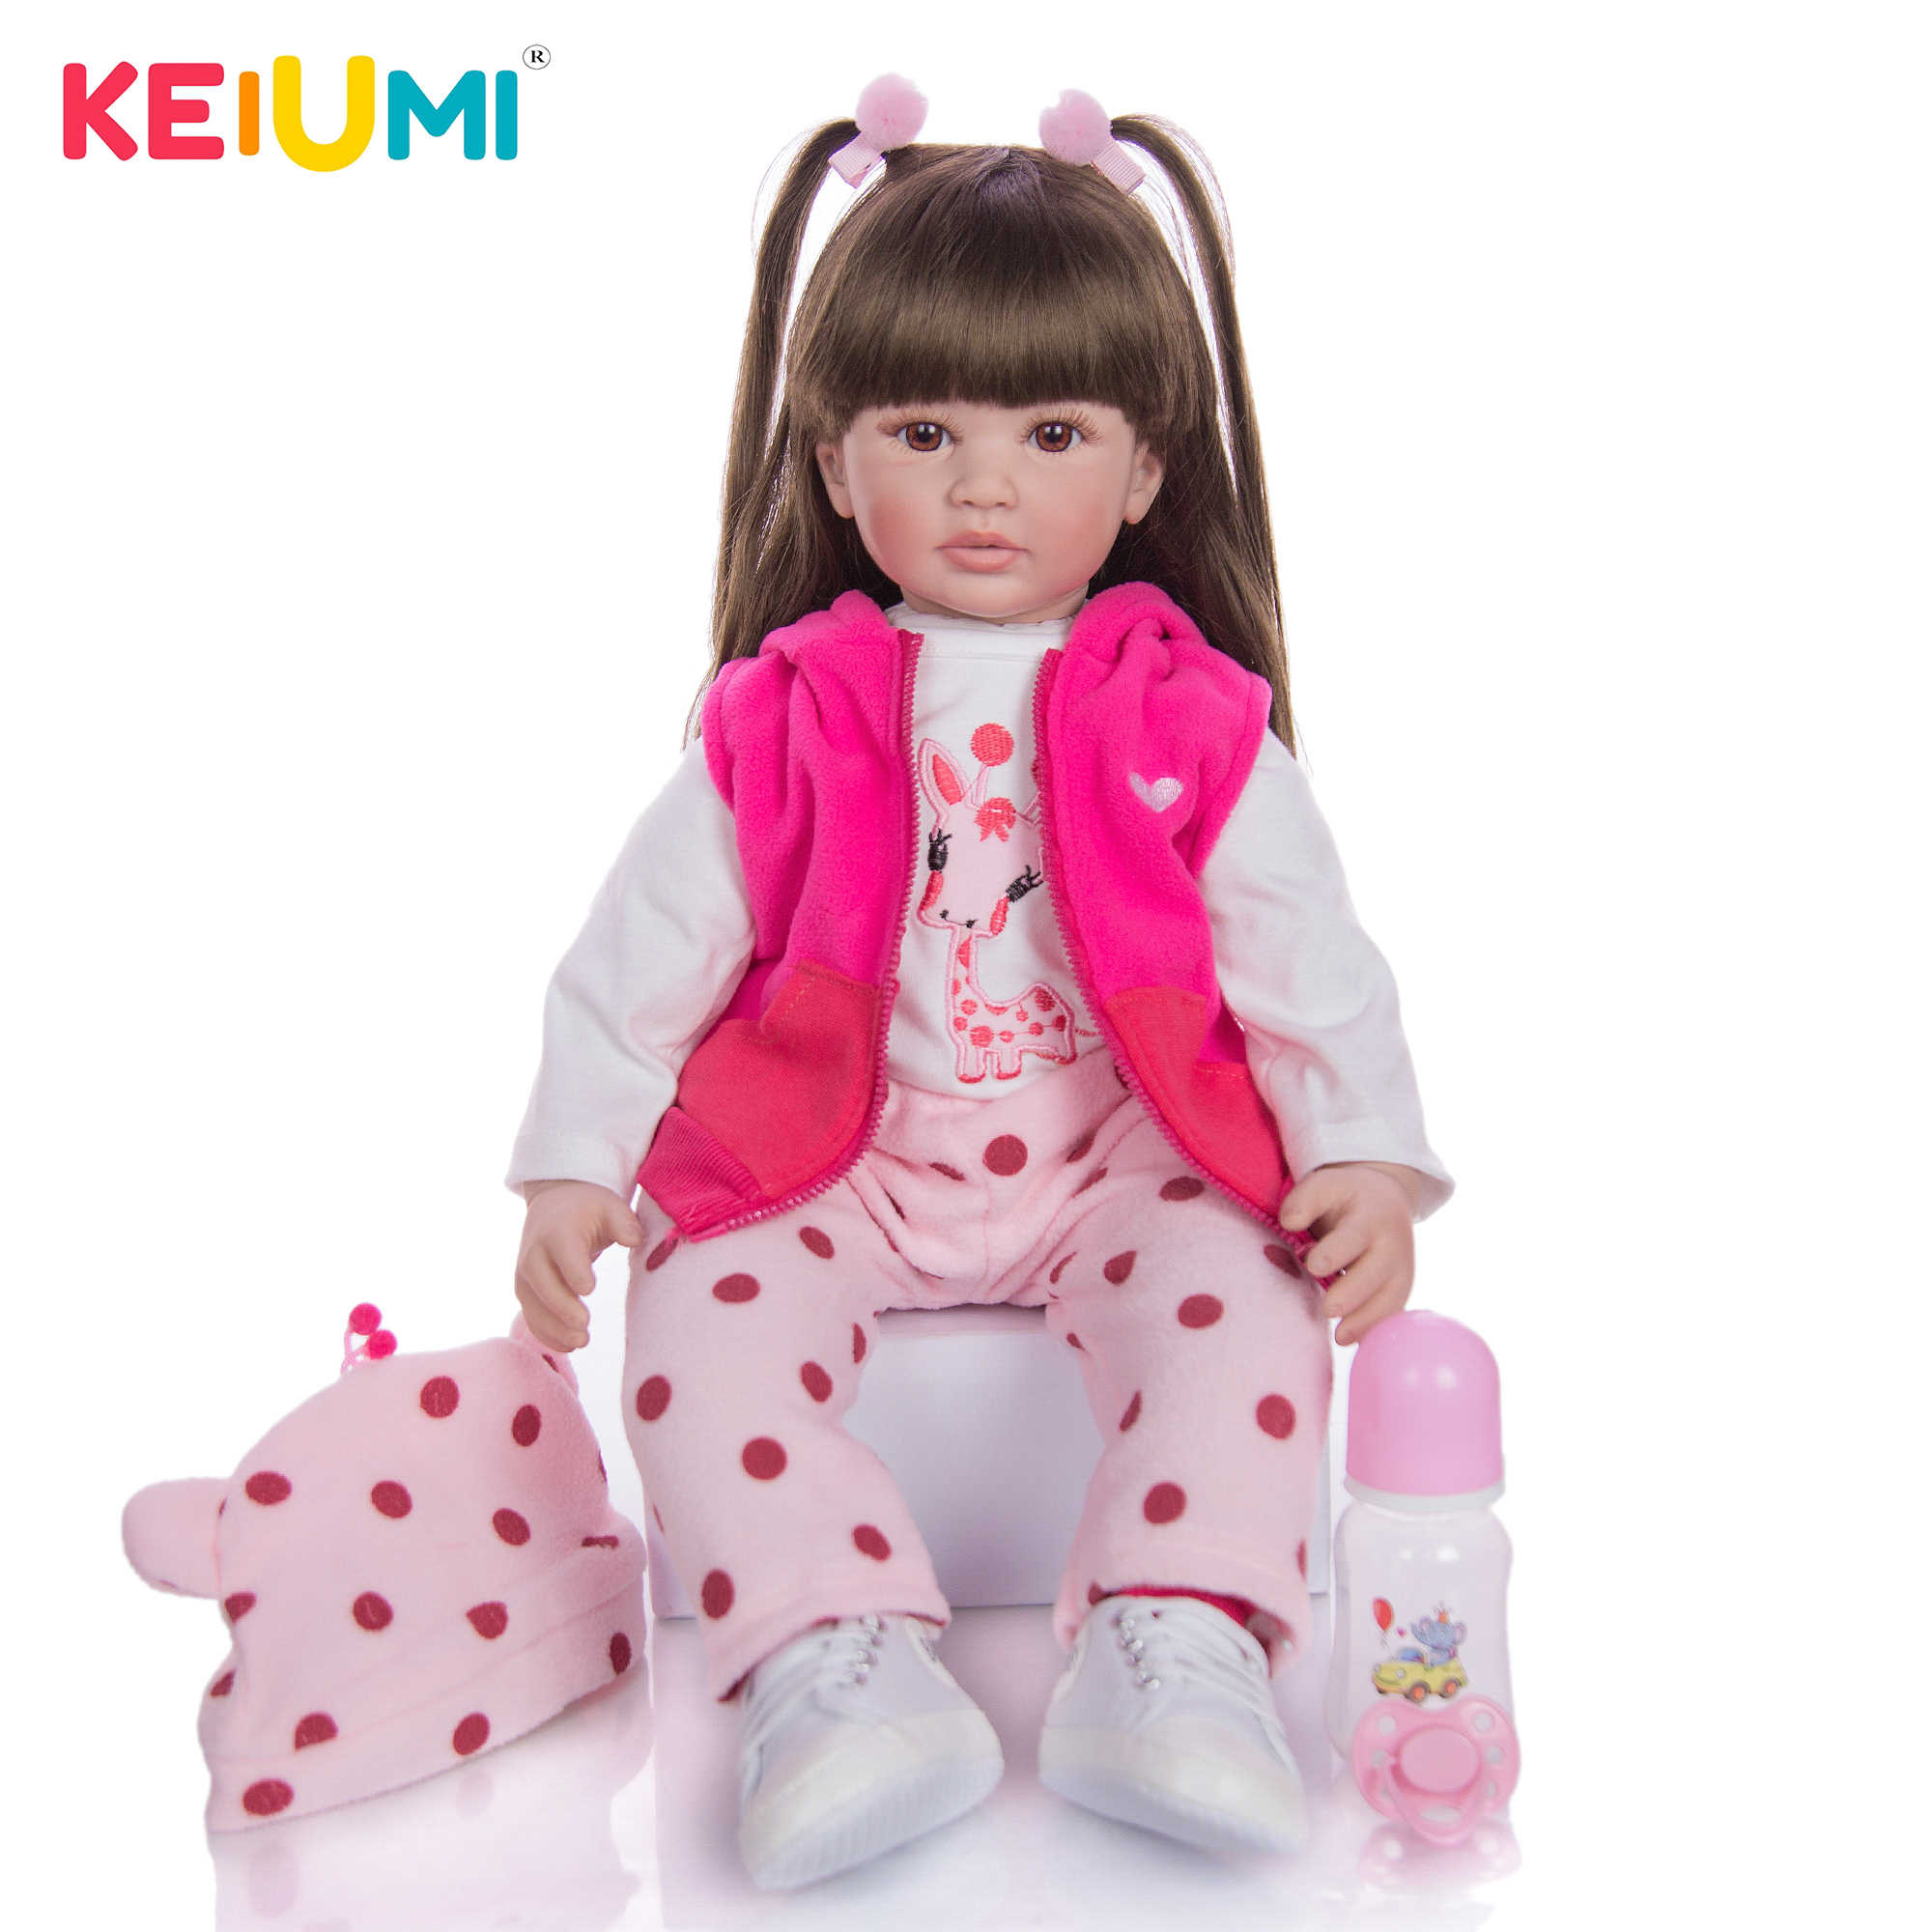 Reborn Toddler Baby Dolls 24/'/' Soft Vinyl Silicone Long Hair Doll Kids Xmas Gift